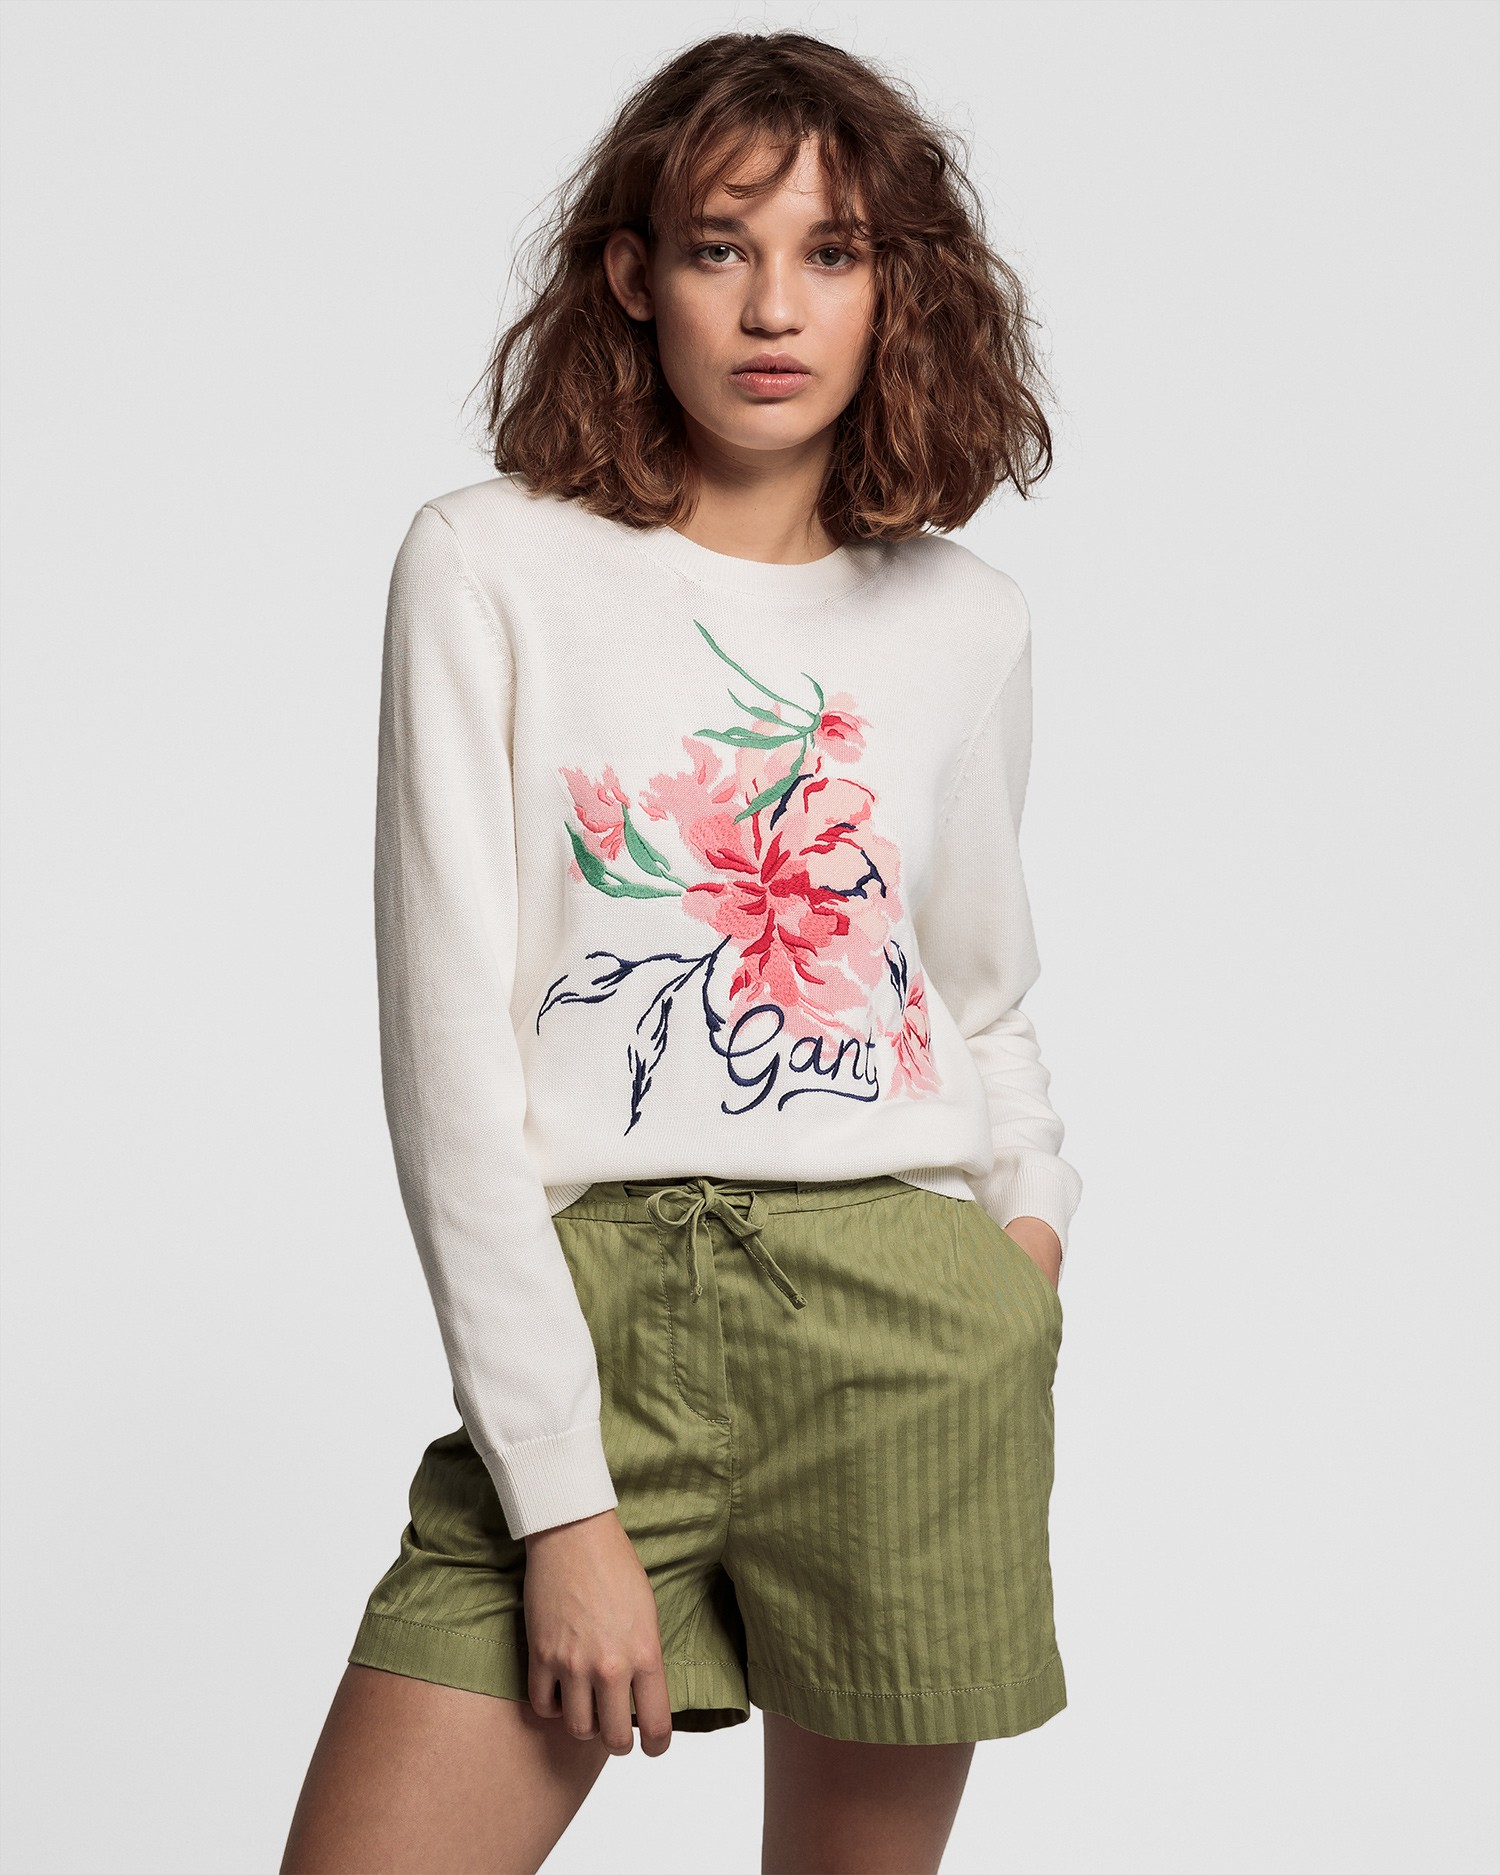 GANT Women's Sweater - 4804107